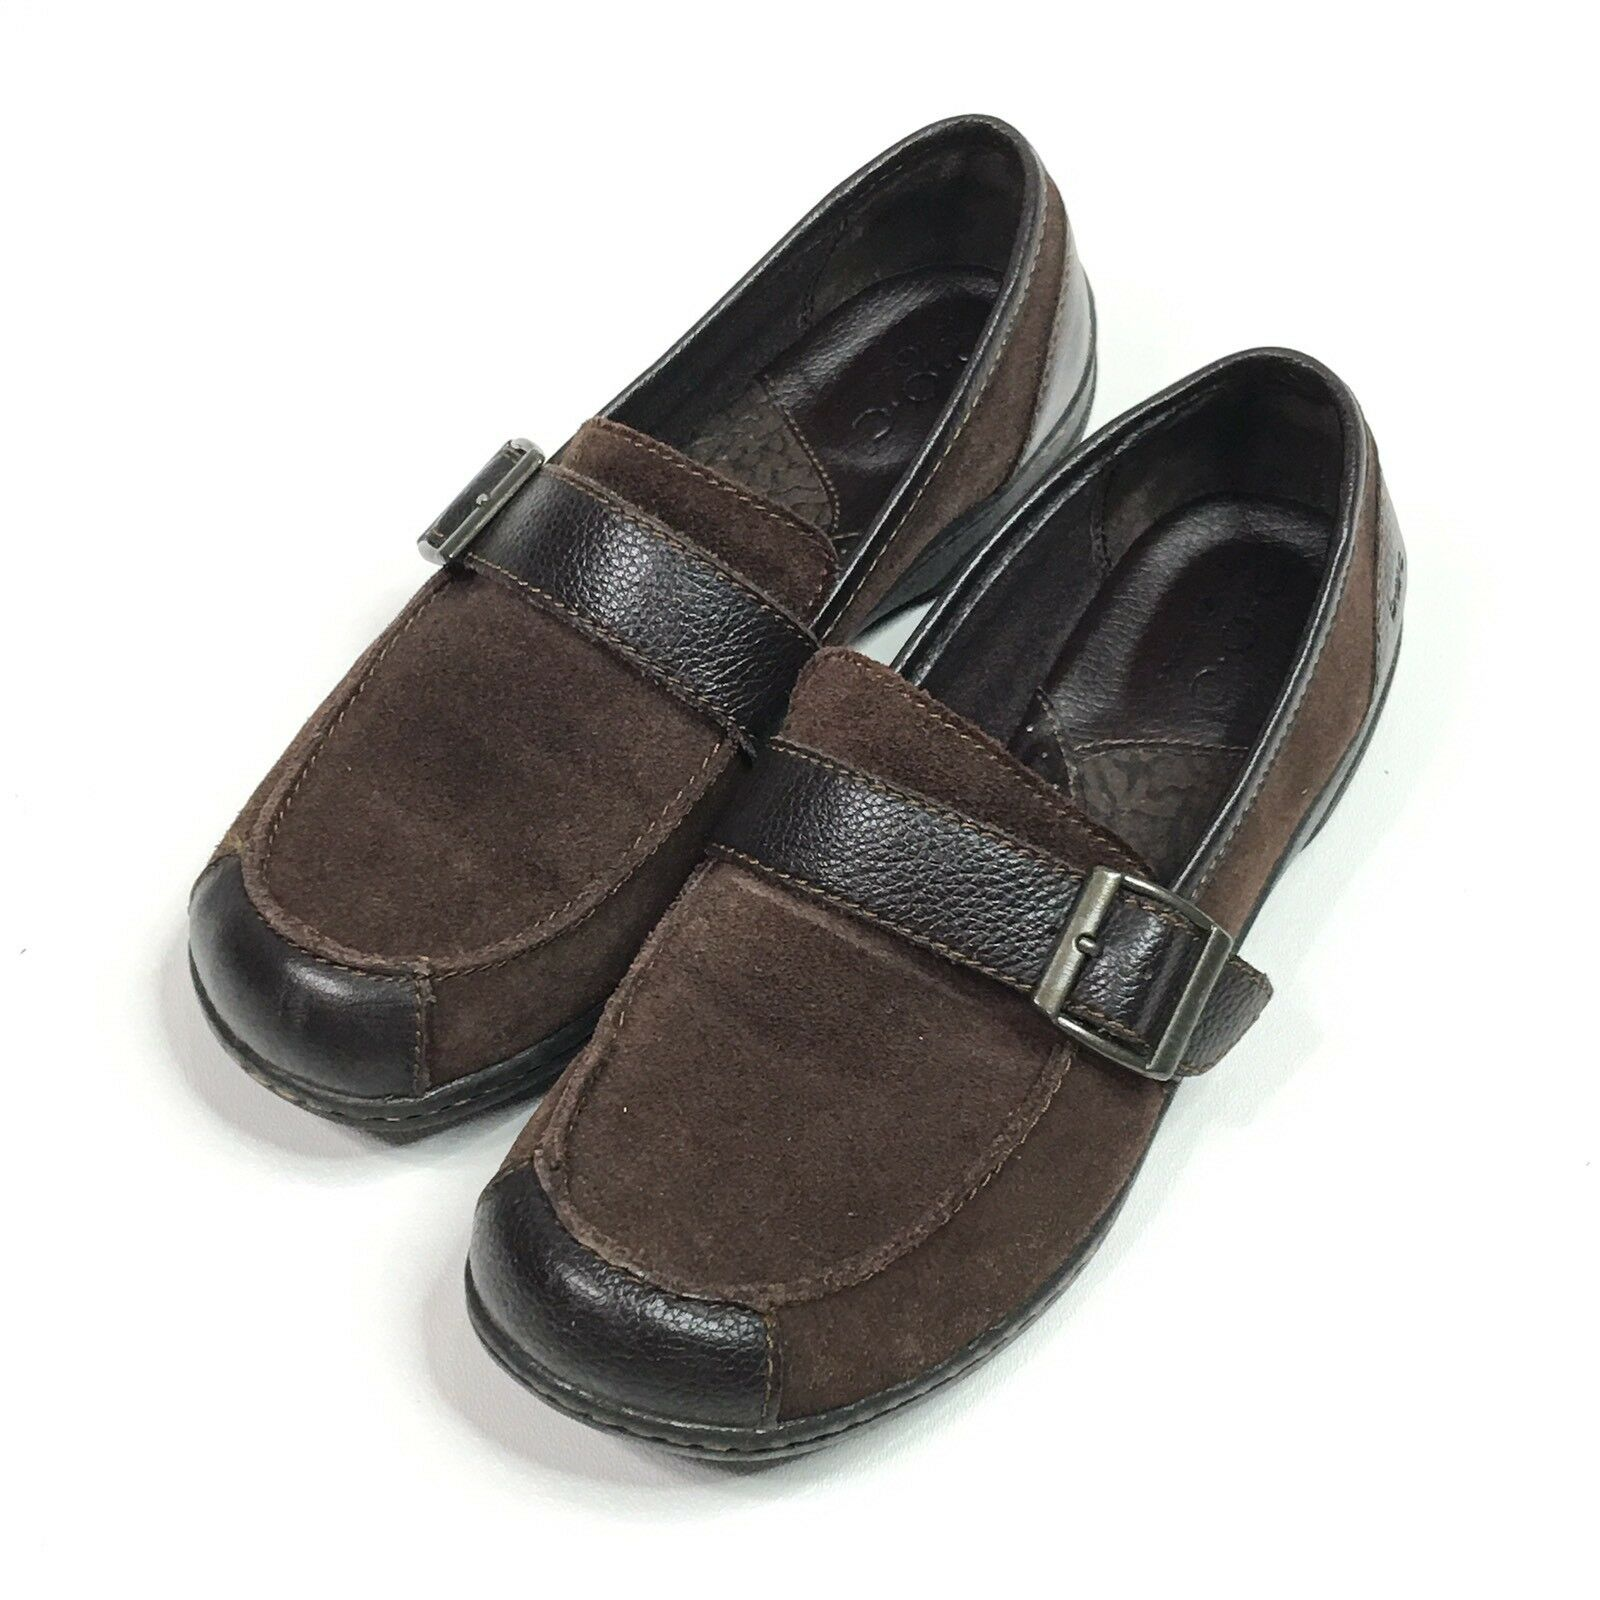 BOC Born Concept BC6645 Womens Brown Suede Loafers Slip On shoes Size 7.5 M